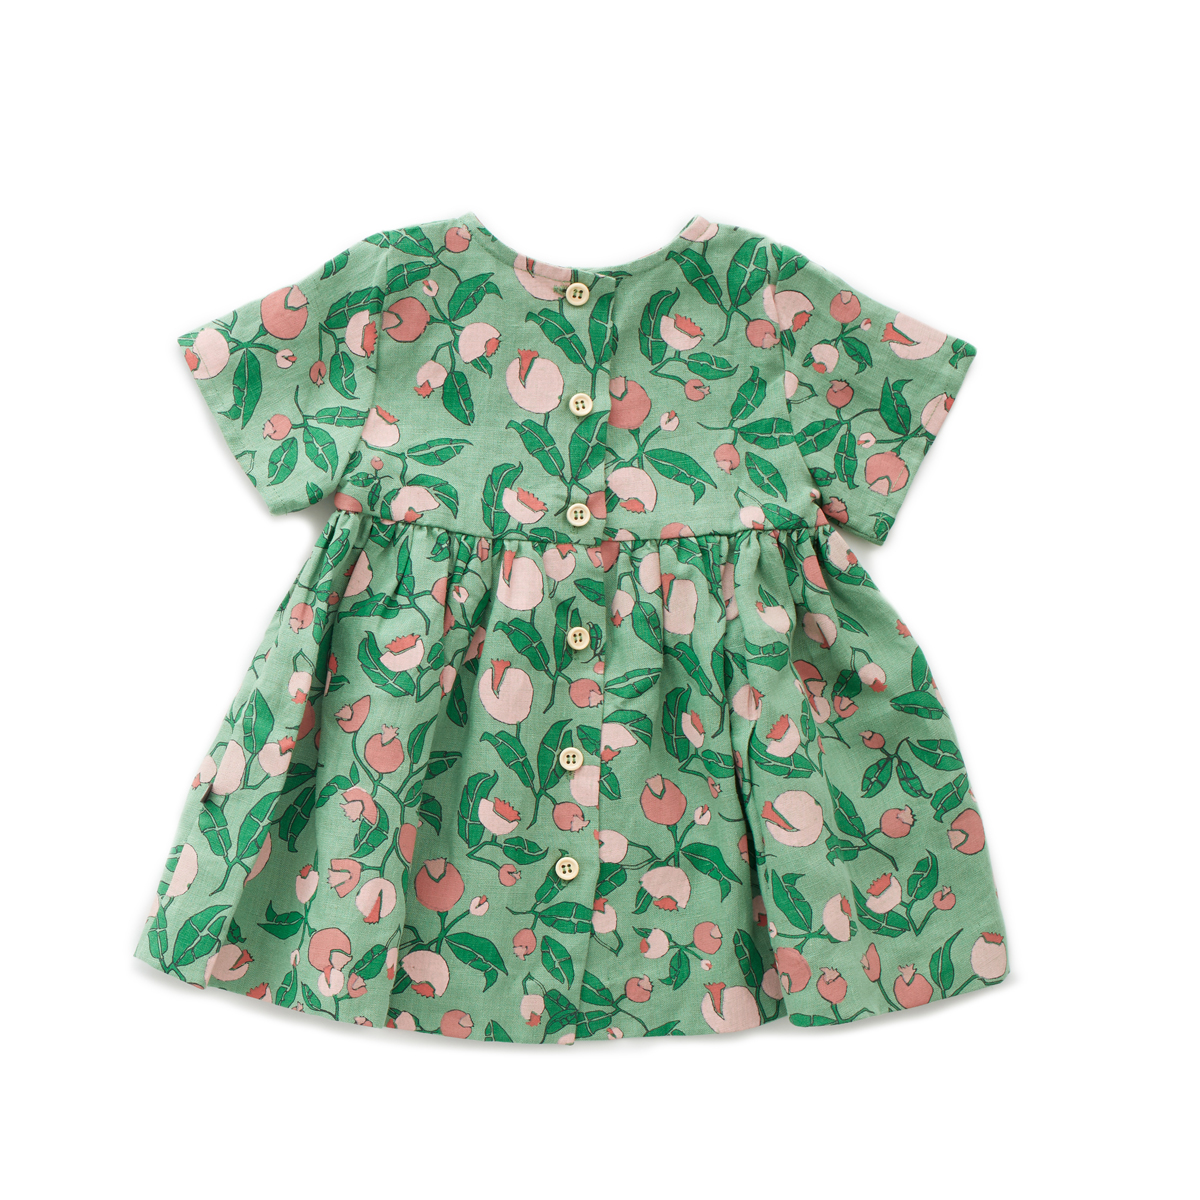 Oeuf Short Sleeve Dress in Green Flowers